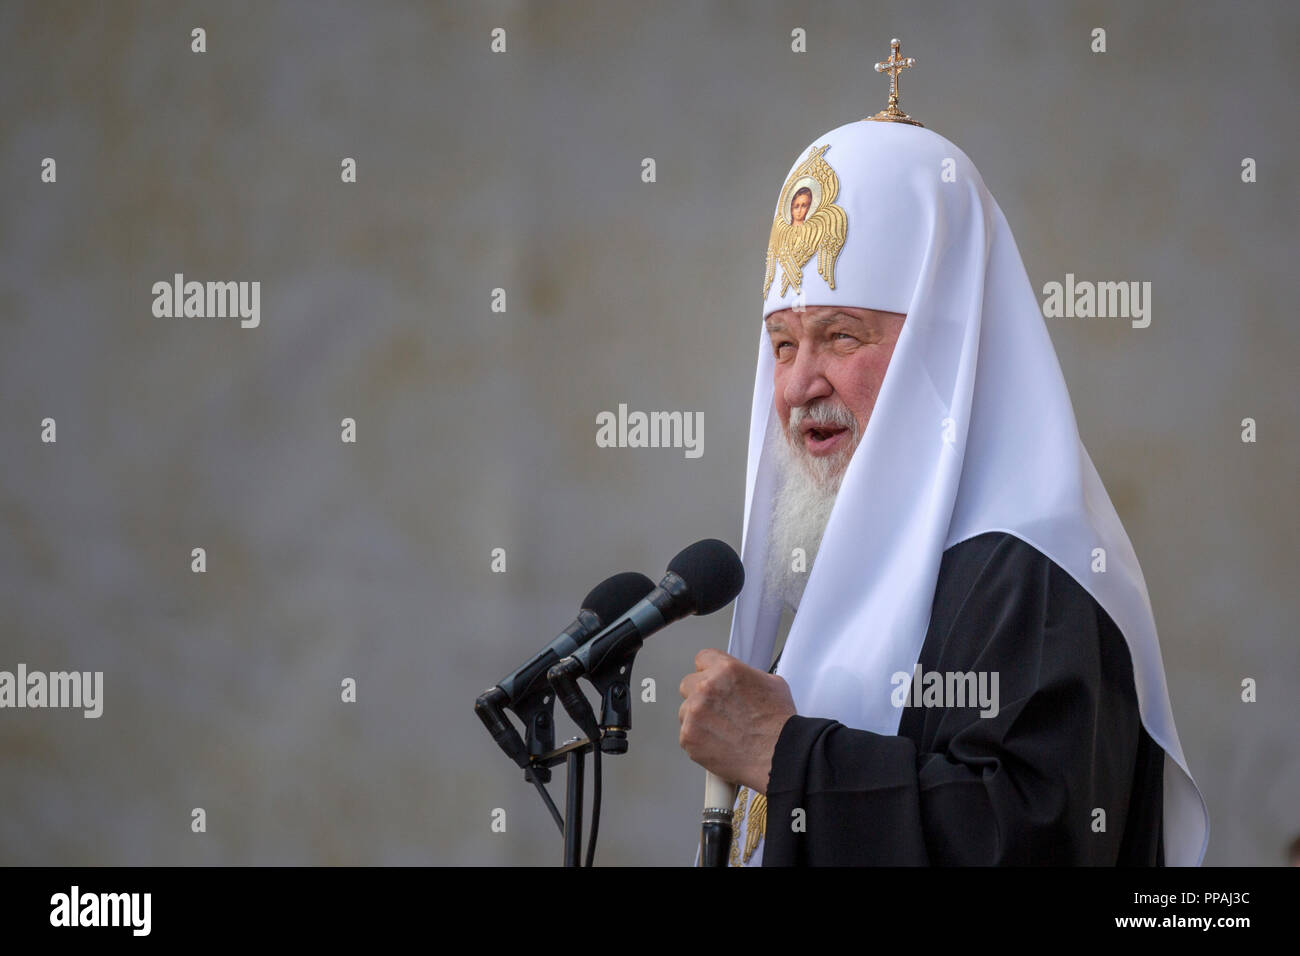 Patriarch Kirill of Moscow and All Russia speaks at a concert marking Day of Slavic Written Language and Culture in Moscow's Red Square, Russia - Stock Image